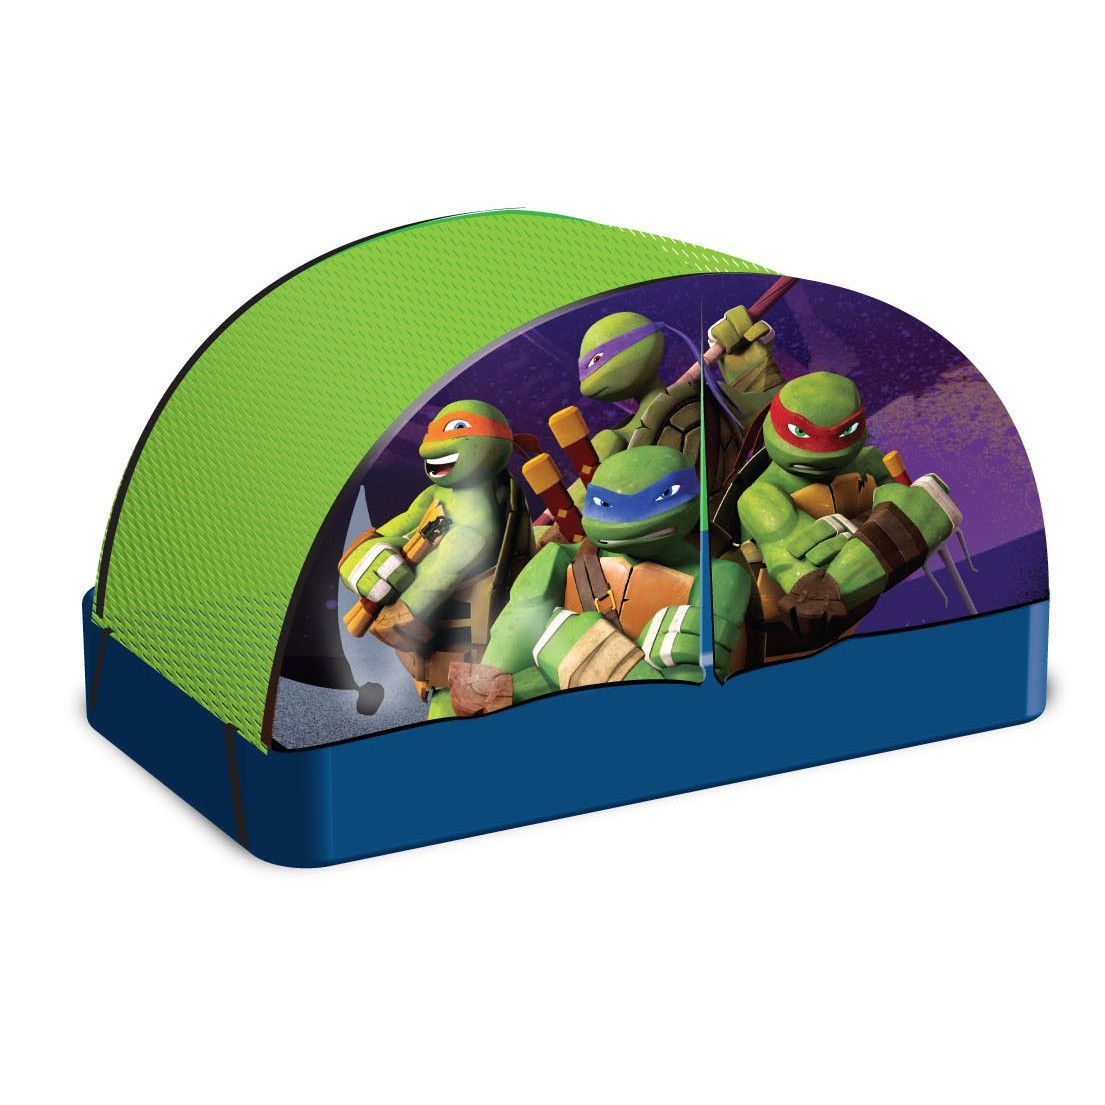 Teenage Mutant Ninja Turtles Fabric Childu0027s Bed Tent  sc 1 st  Pinterest & Teenage Mutant Ninja Turtles Fabric Childu0027s Bed Tent | Ninja ...